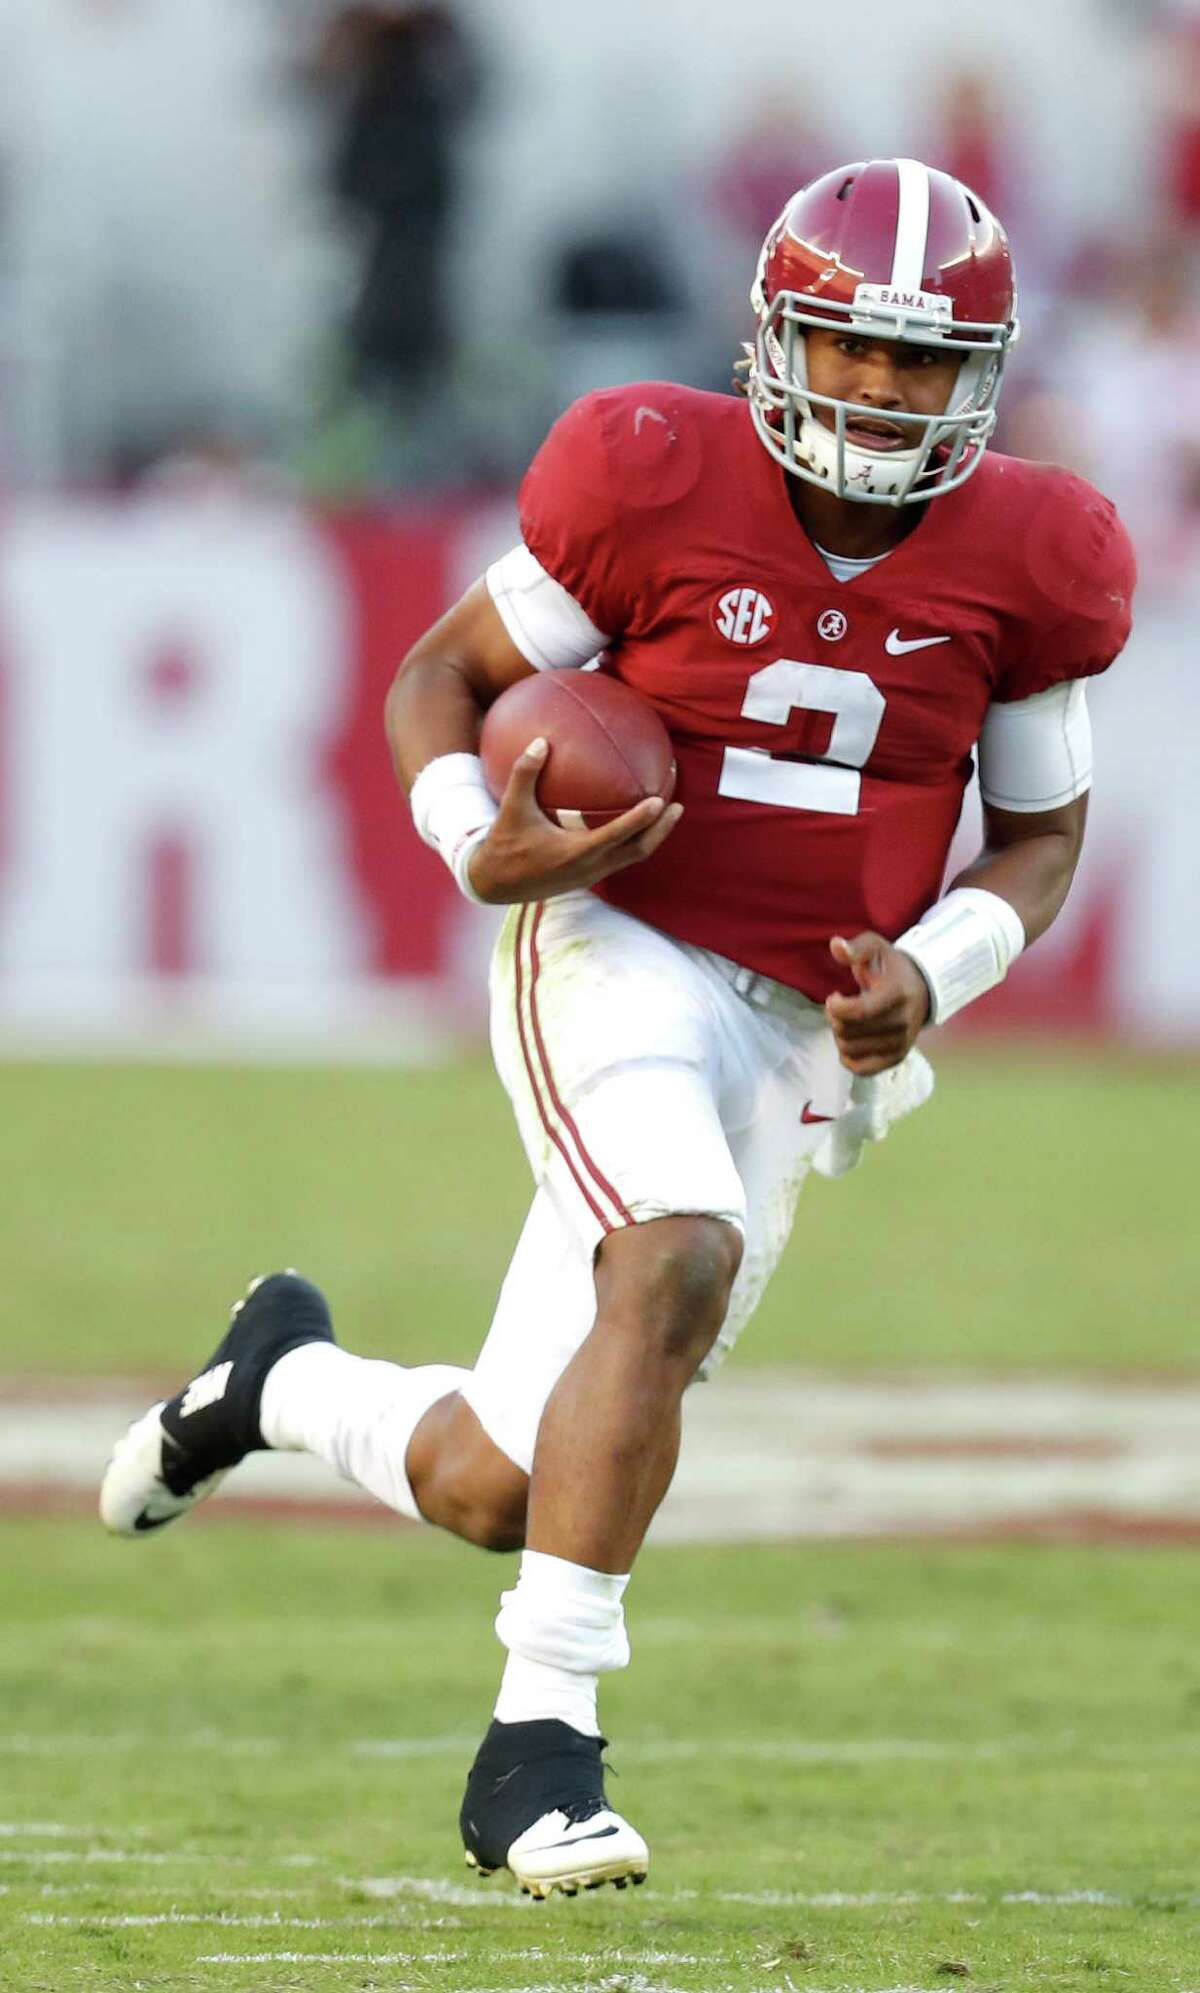 Alabama Crimson Tide quarterback Jalen Hurts (2) on his 27-yard run for a touchdown as during the fourth quarter of a college football game at Bryant-Denny Stadium, Saturday,Oct. 22, 2016 in Tuscaloosa. ( Karen Warren / Houston Chronicle )